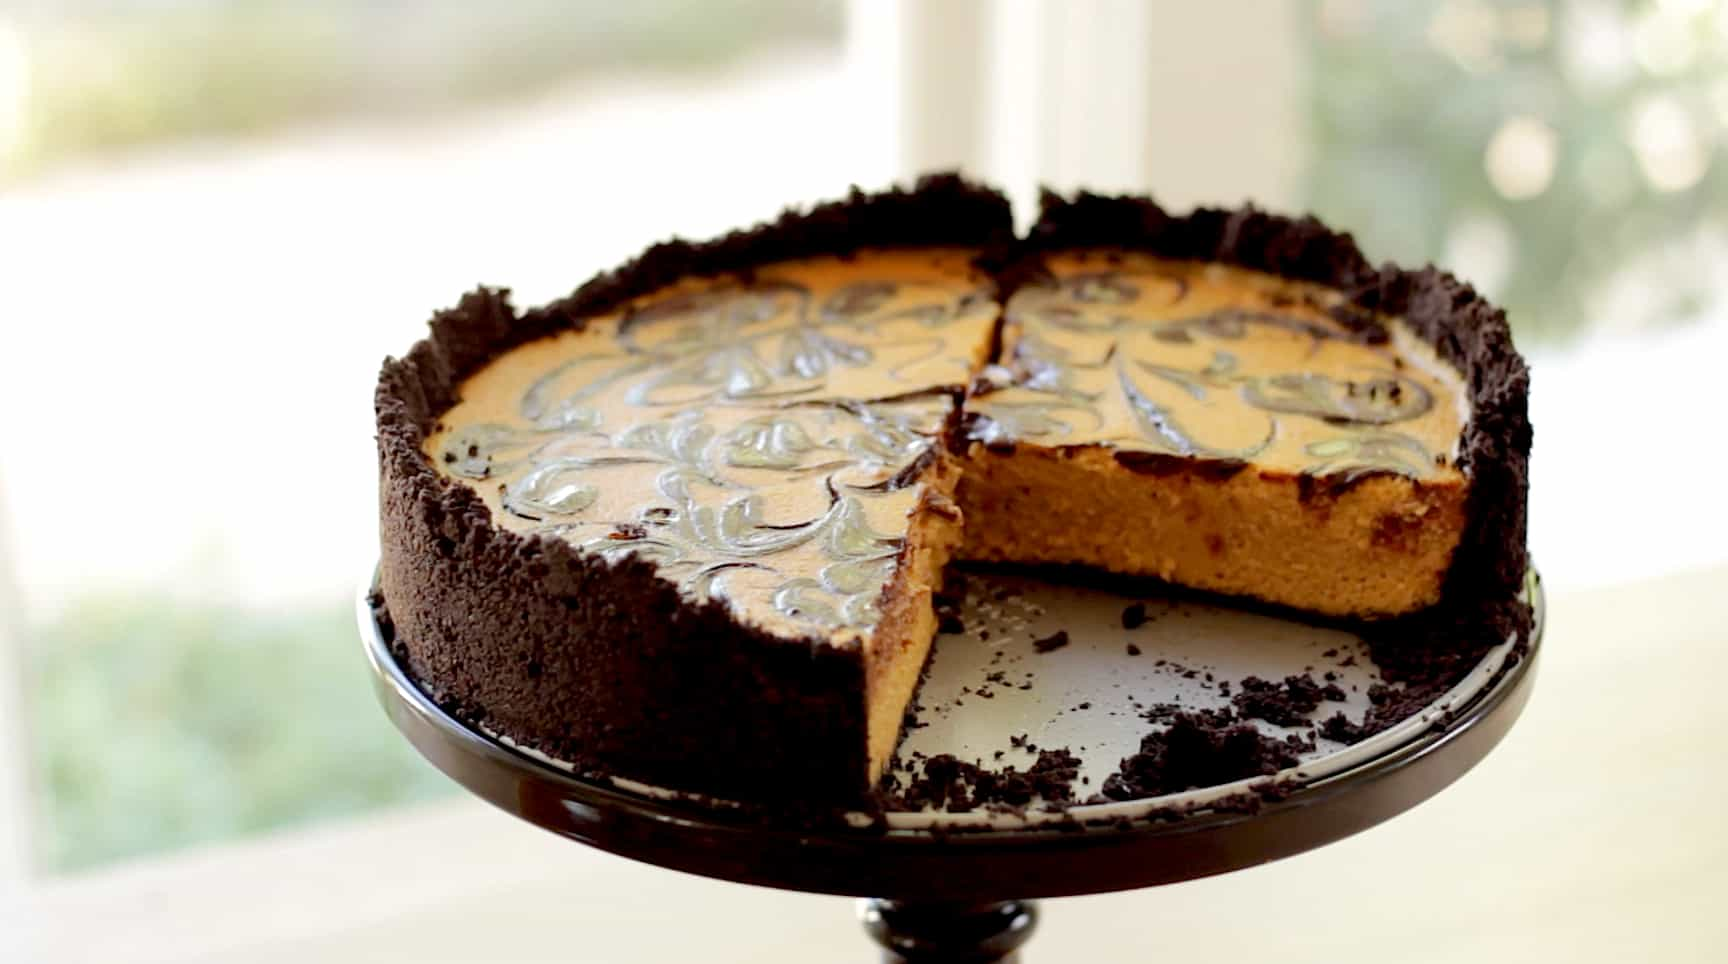 Pumpkin Cheesecake with Chocolate Swirl